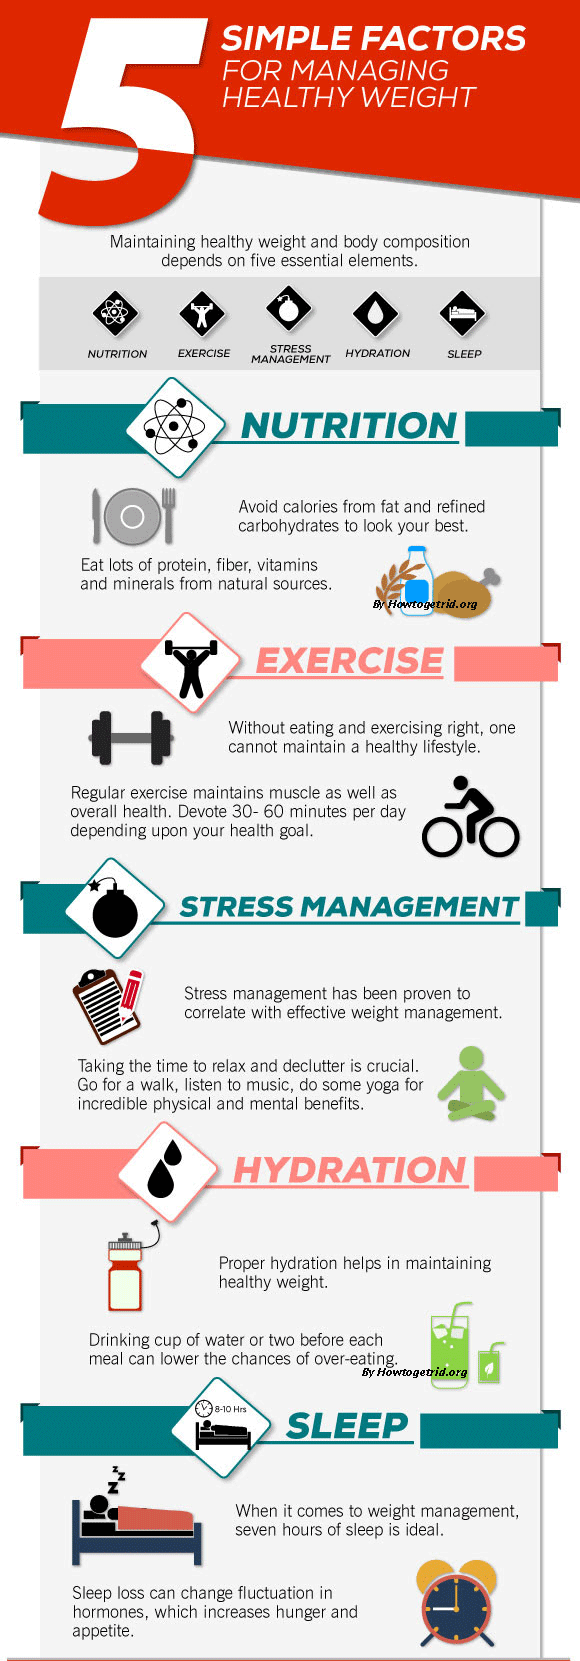 5 simple factors for managing healthy weight